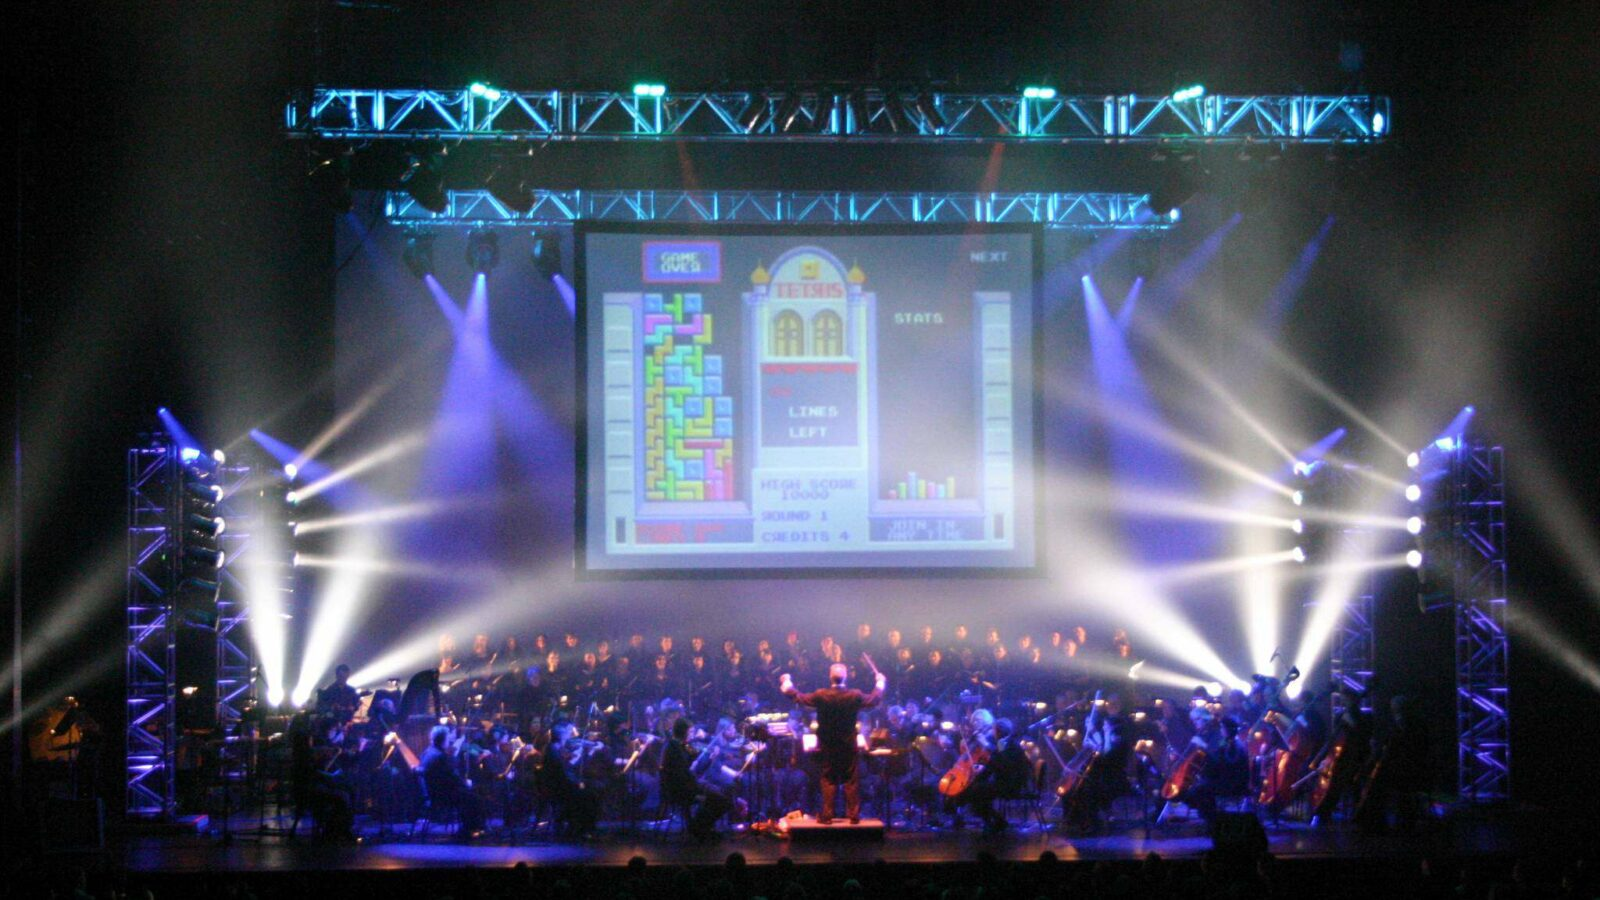 Video Games Live in Concert